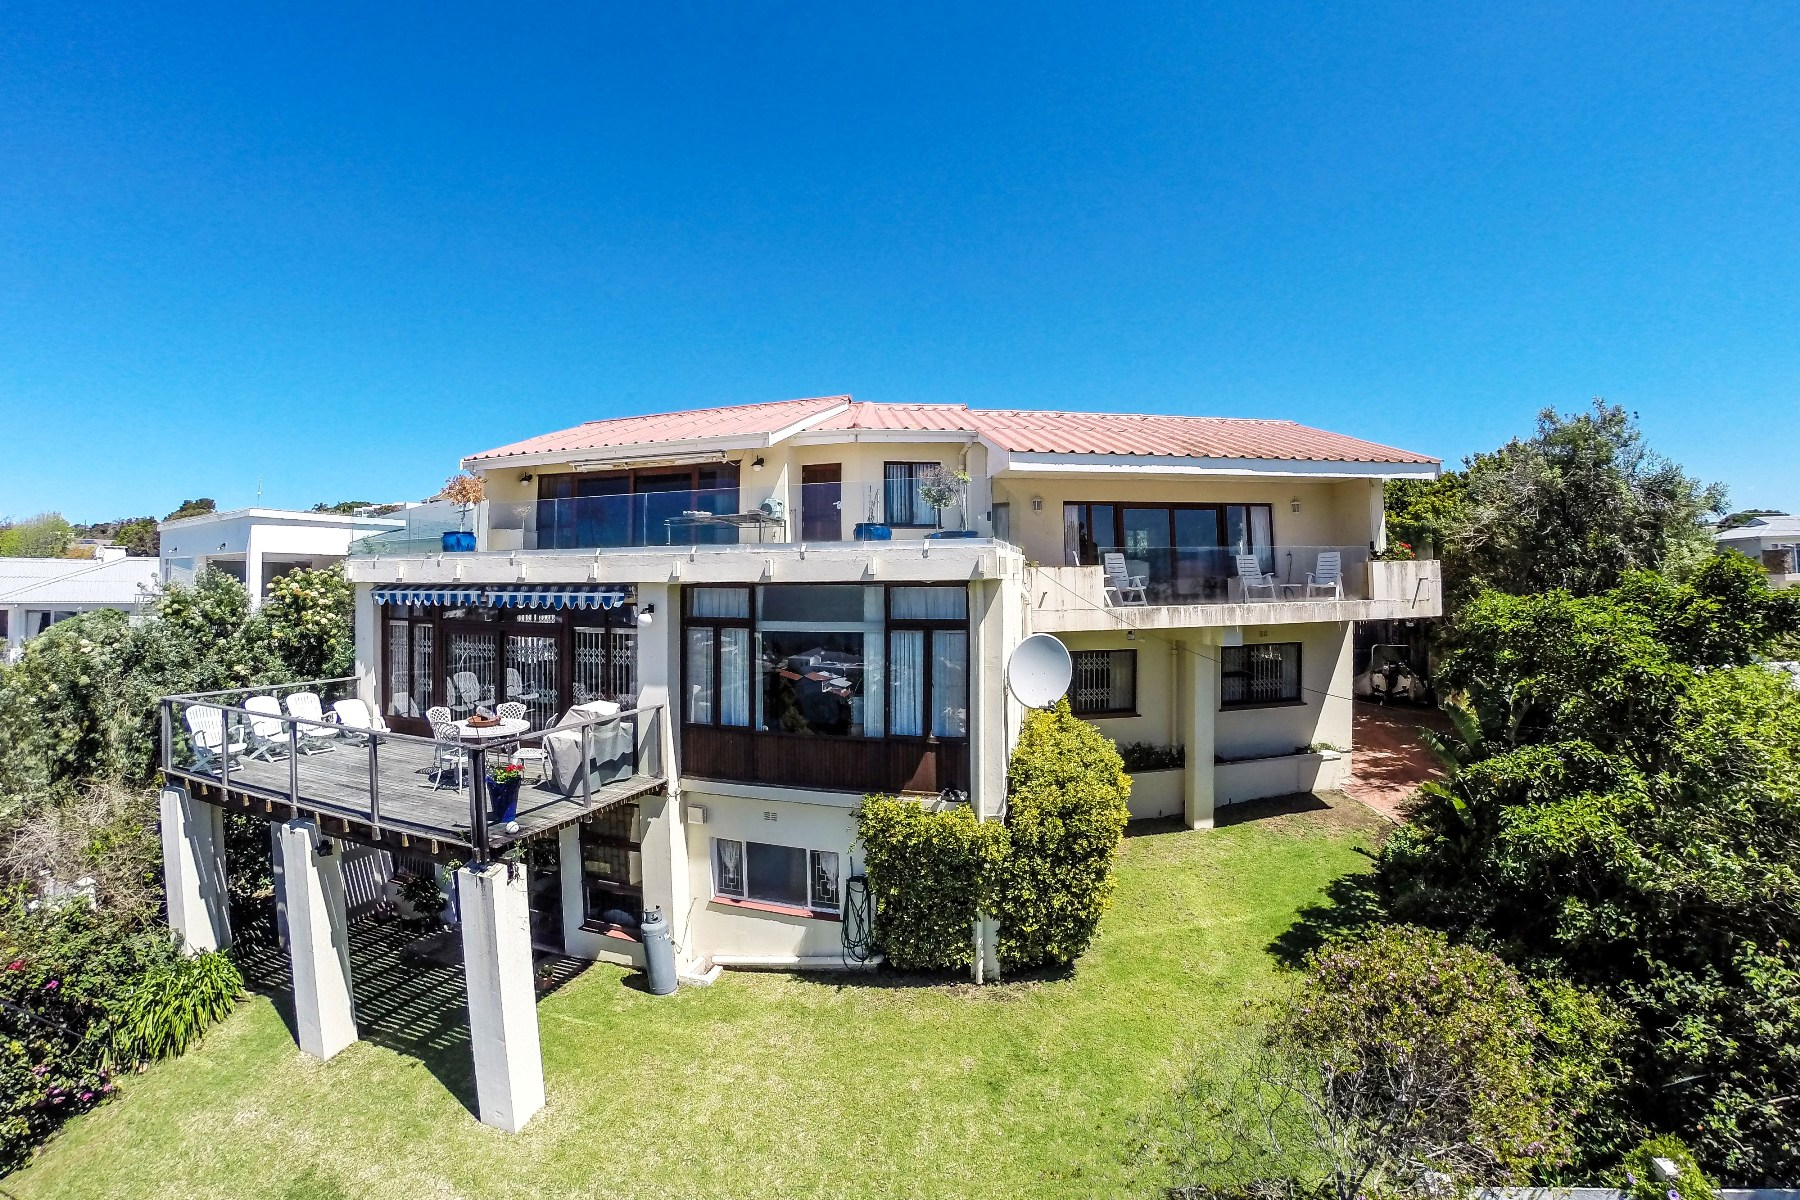 Single Family Home for Sale at Old Plett panoramic sea view home Plettenberg Bay, Western Cape, 6600 South Africa